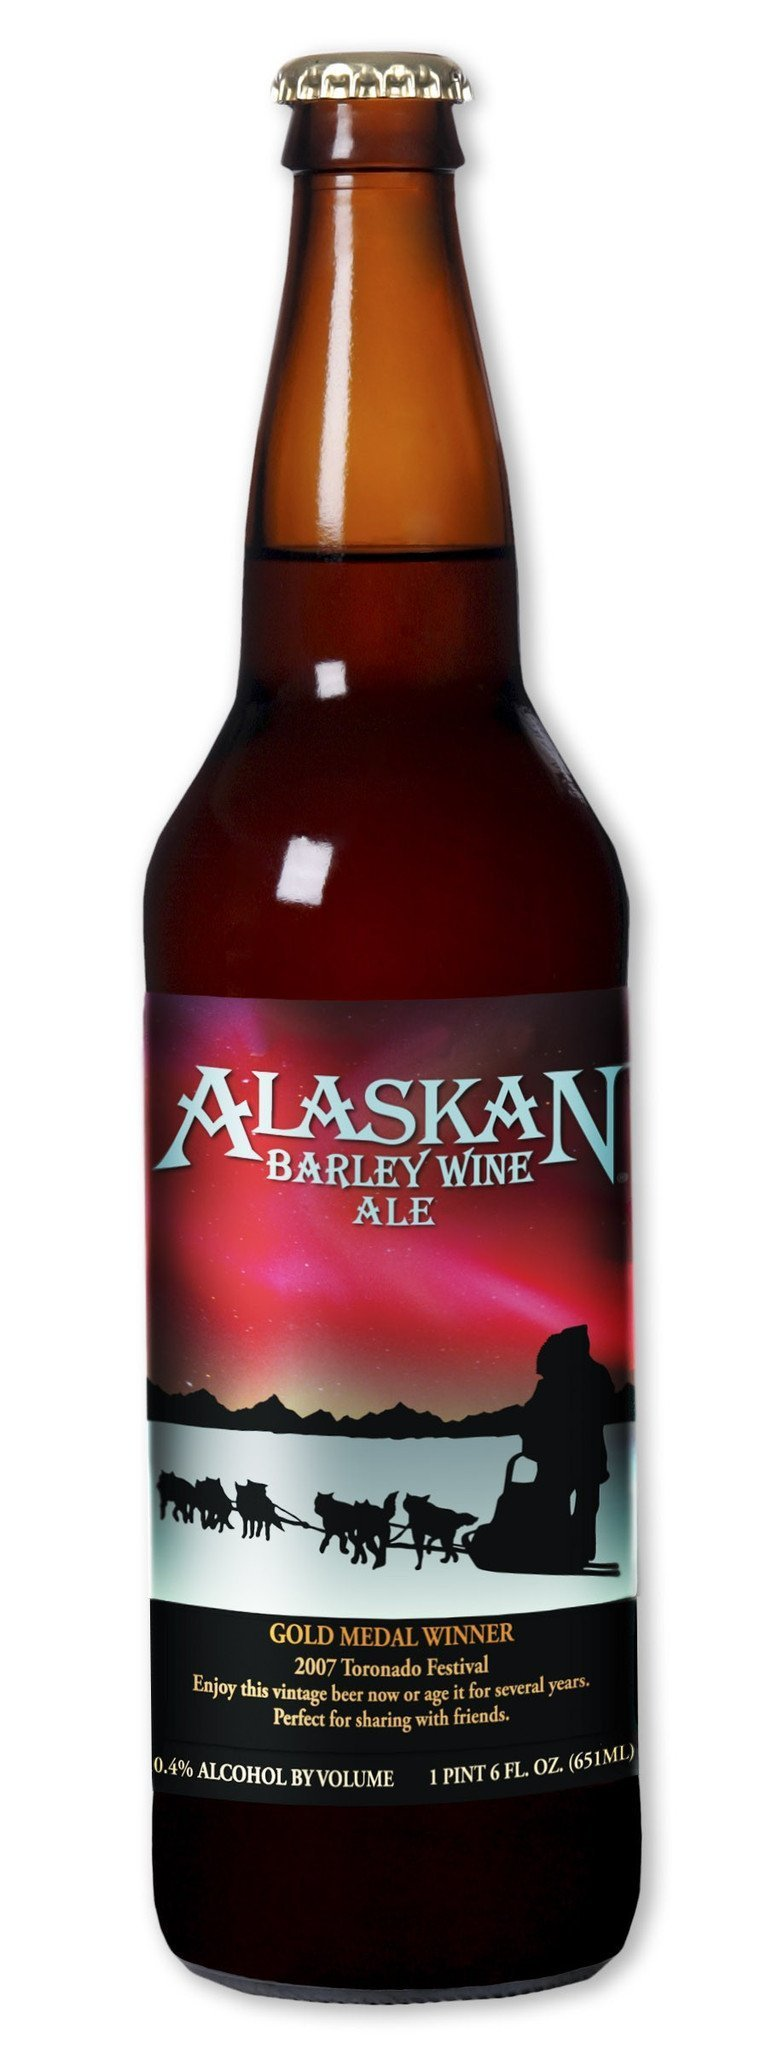 Alaskan barley wine buy craft beer online from for Best wine delivery service